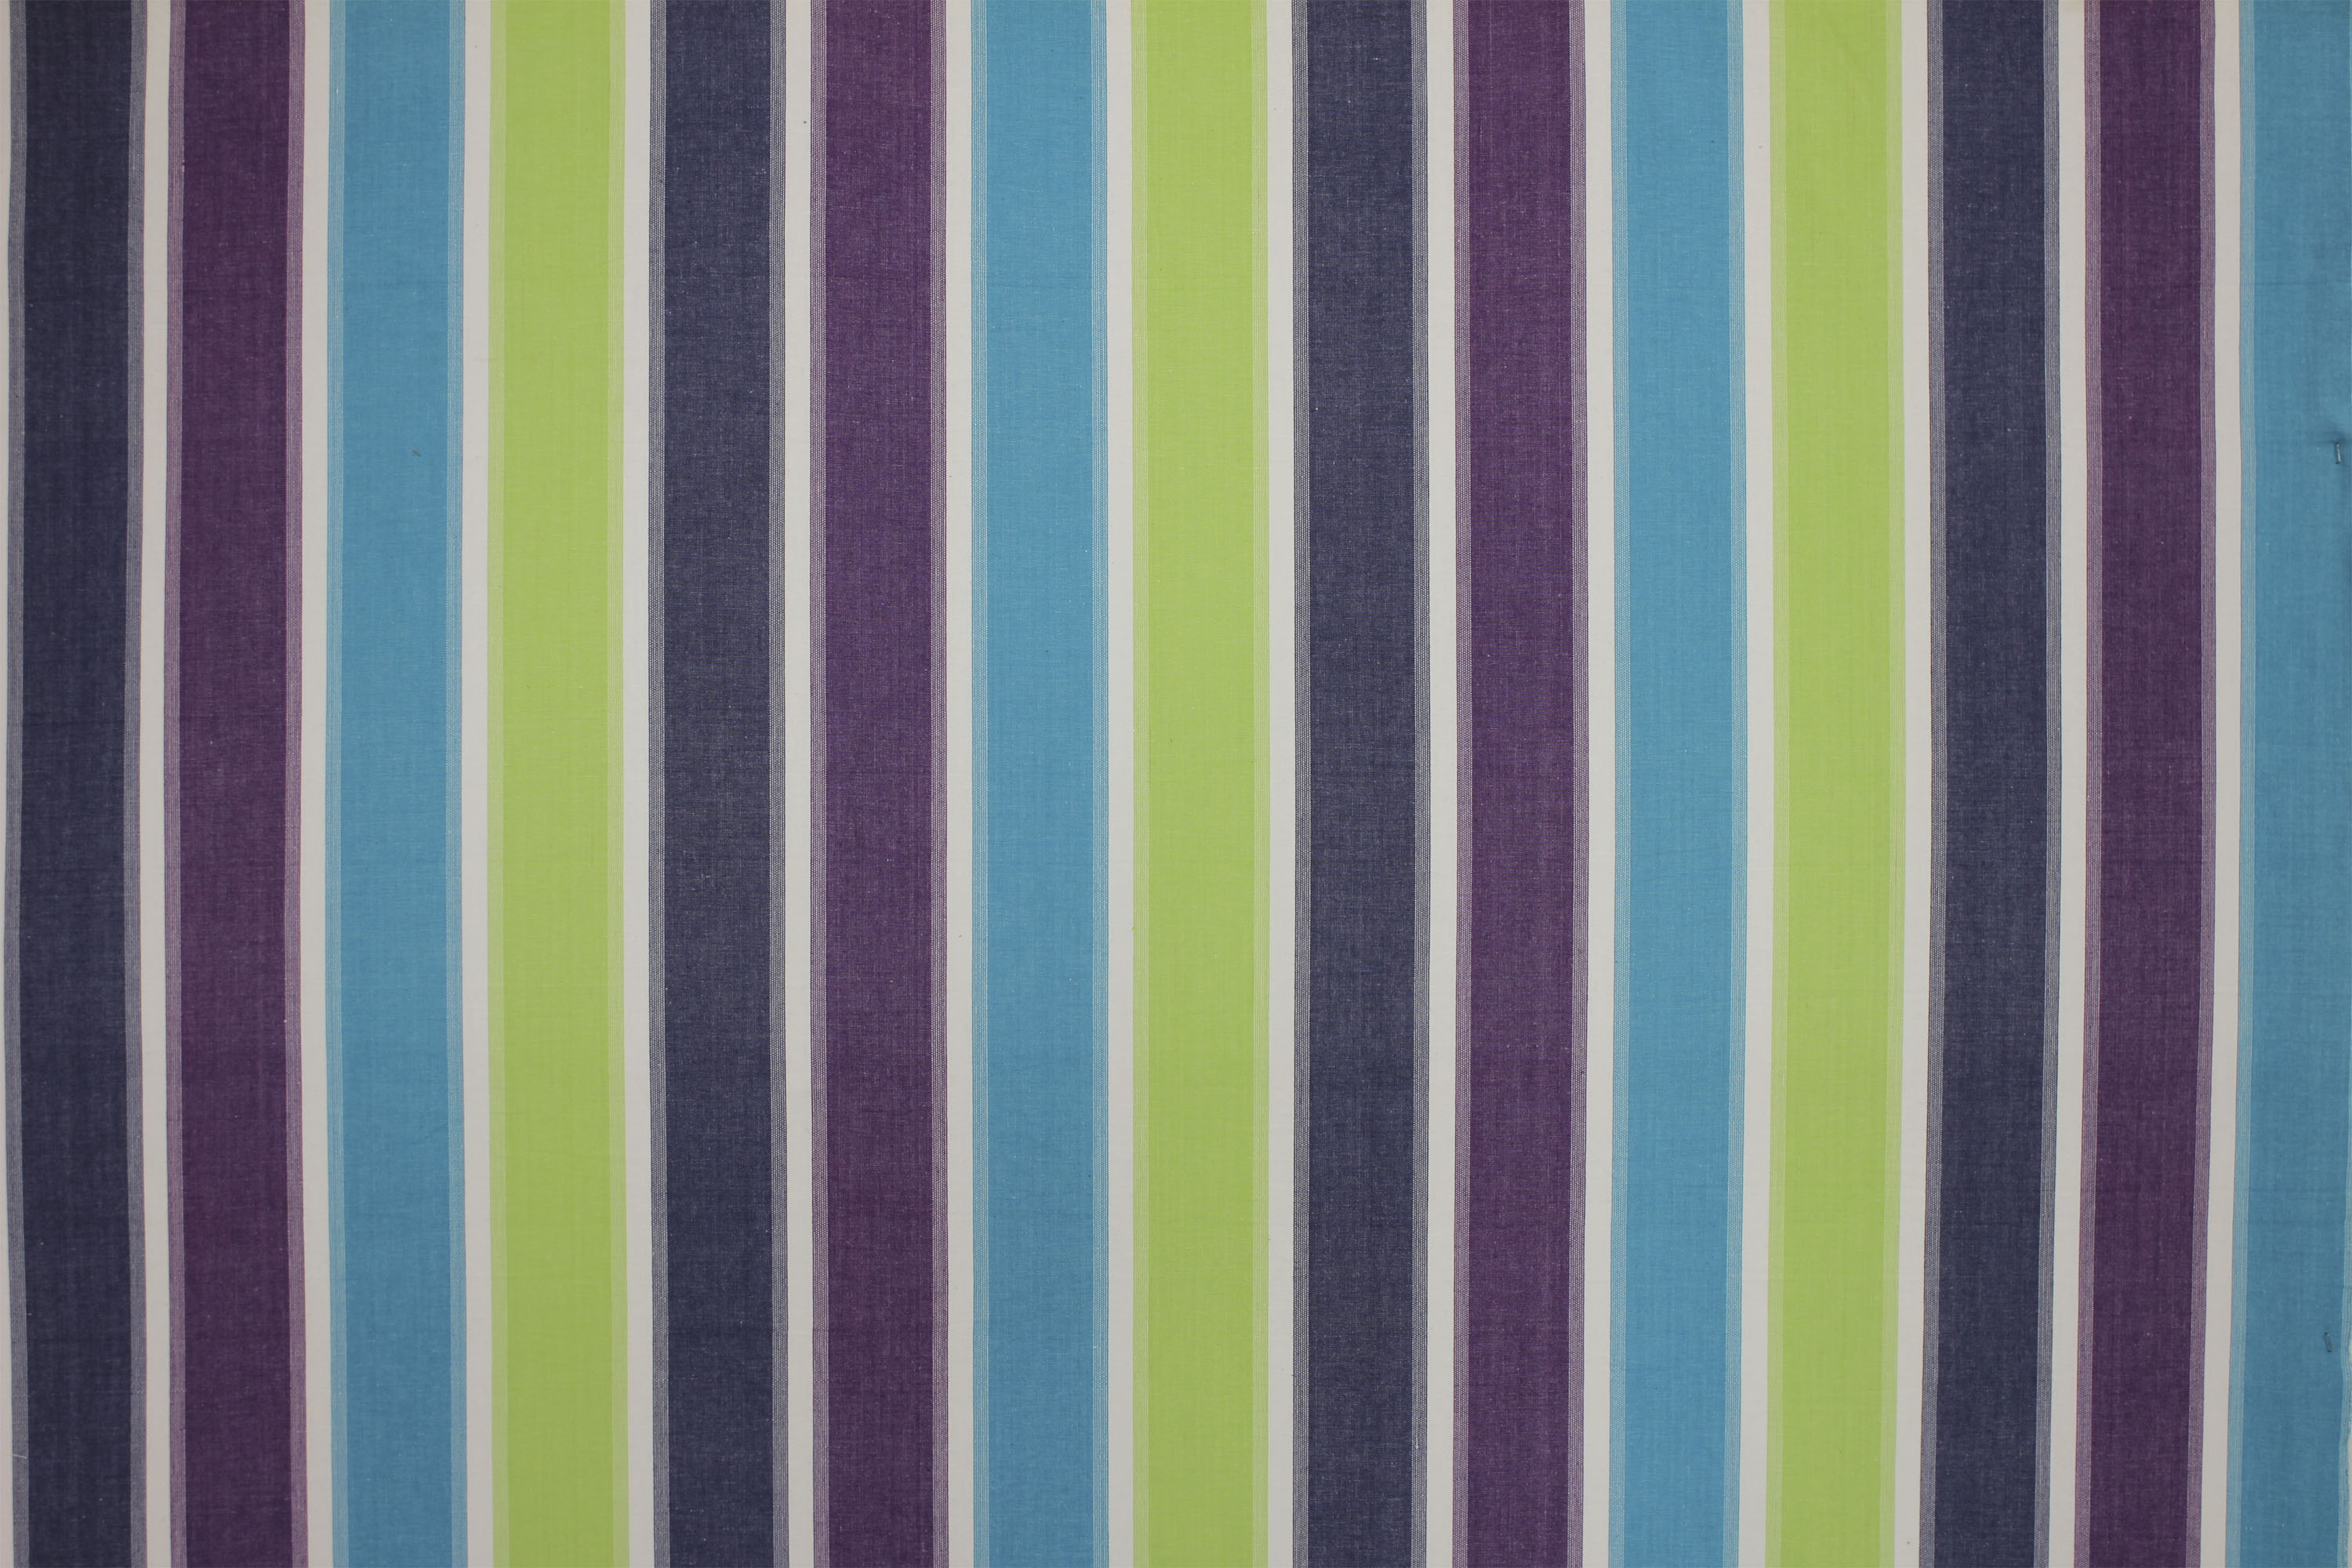 Striped Fabrics | Stripe Cotton Fabrics | Striped Curtain Fabrics ...